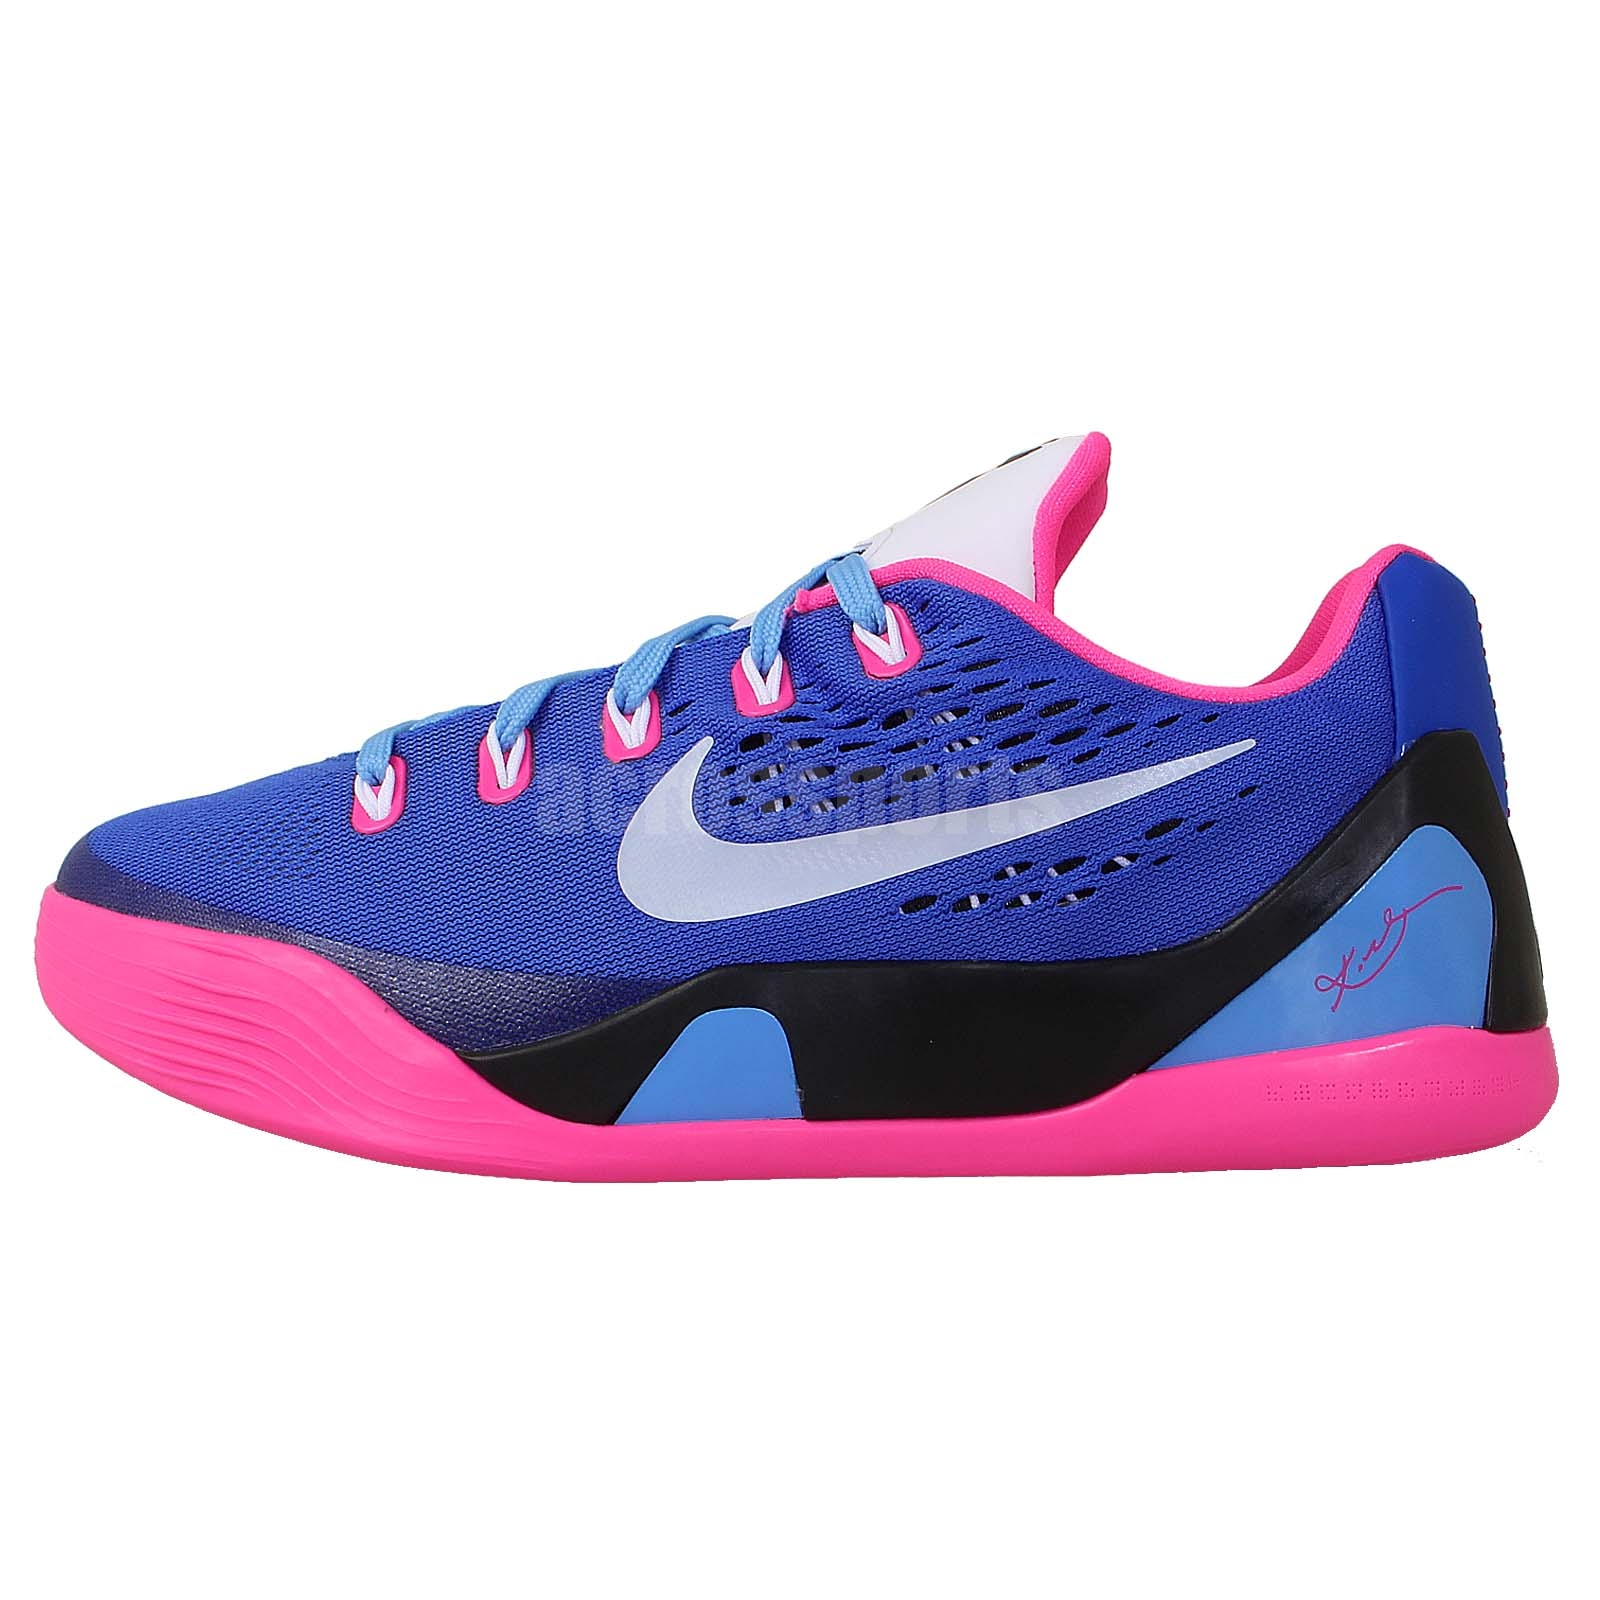 nike basketball shoes for girls blue thebestcouponscouk